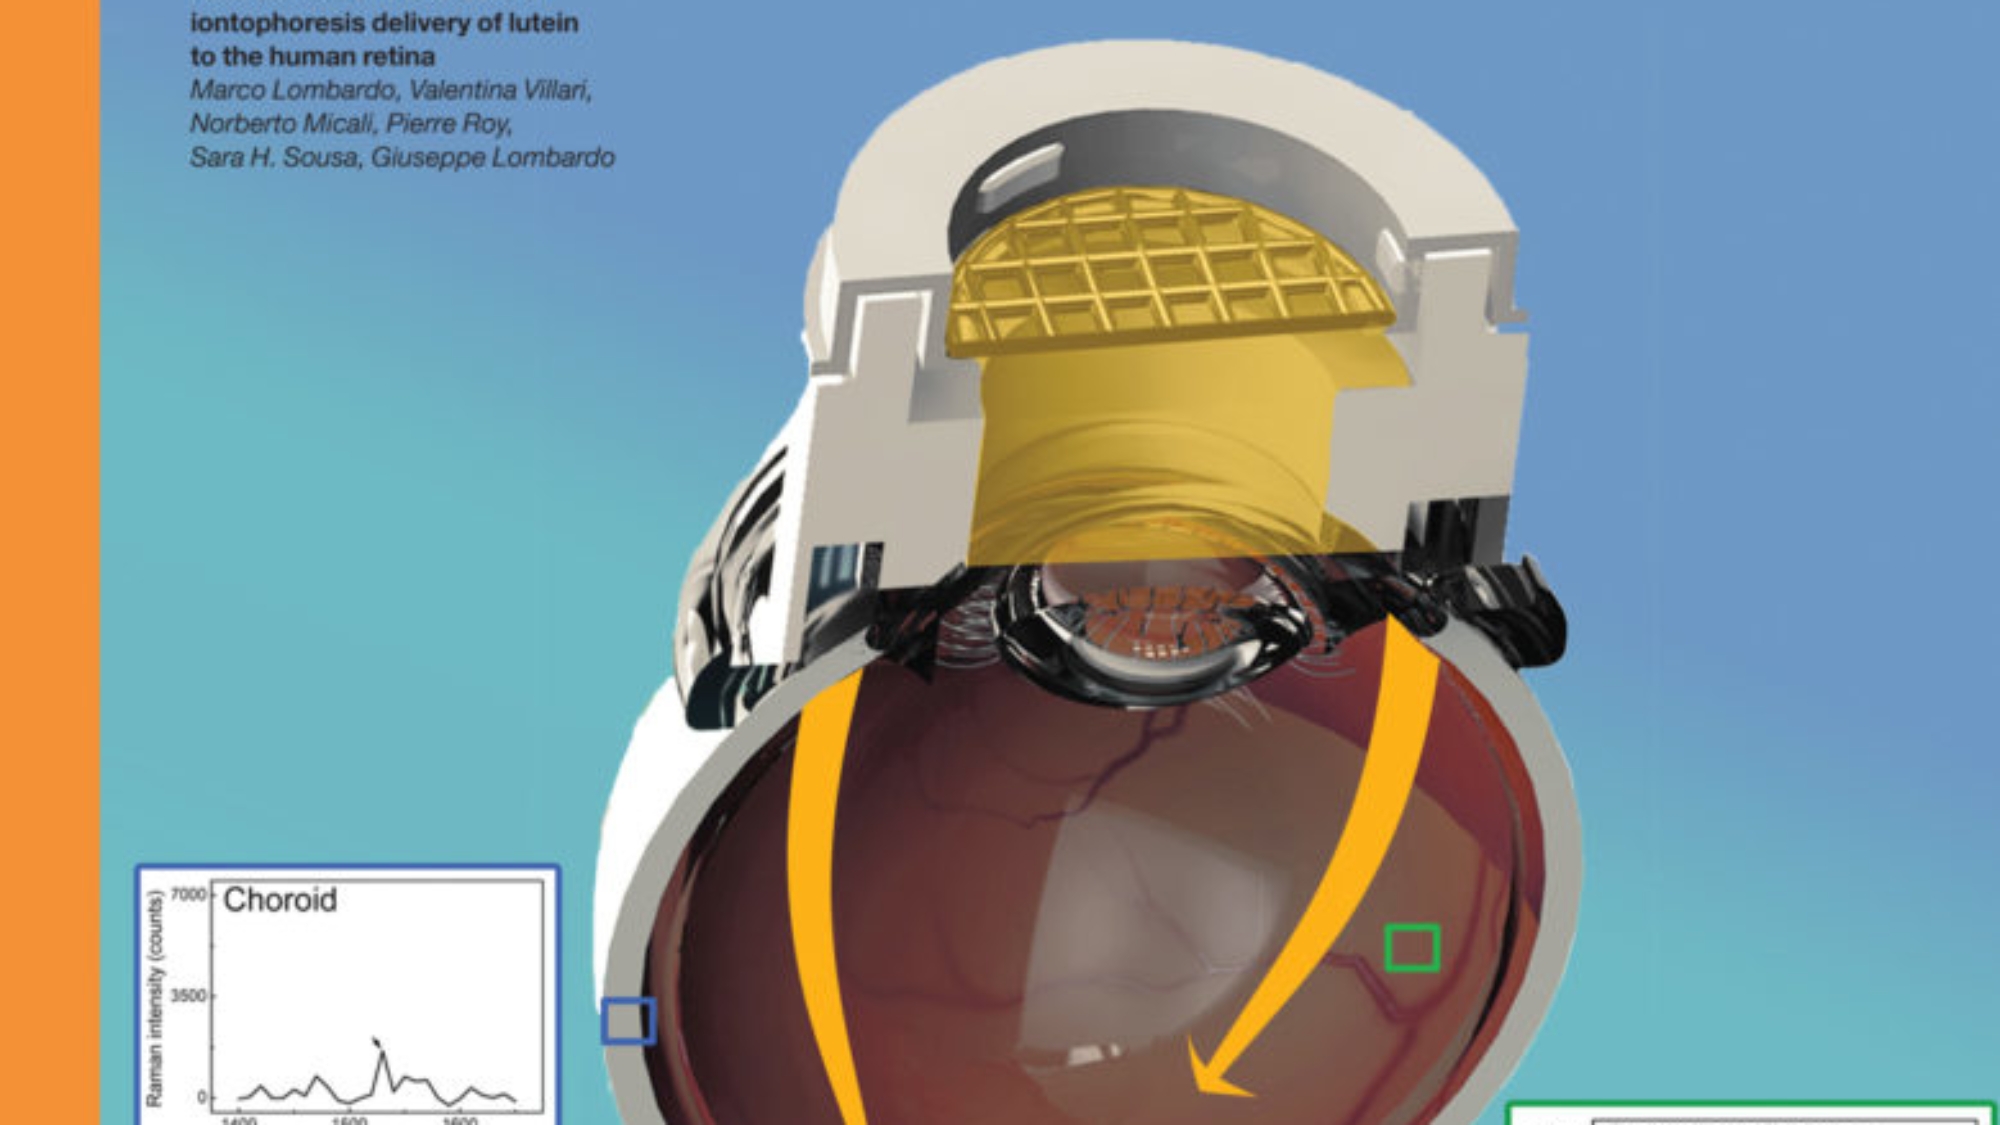 Front Cover: Assessment of trans-scleral iontophoresis delivery